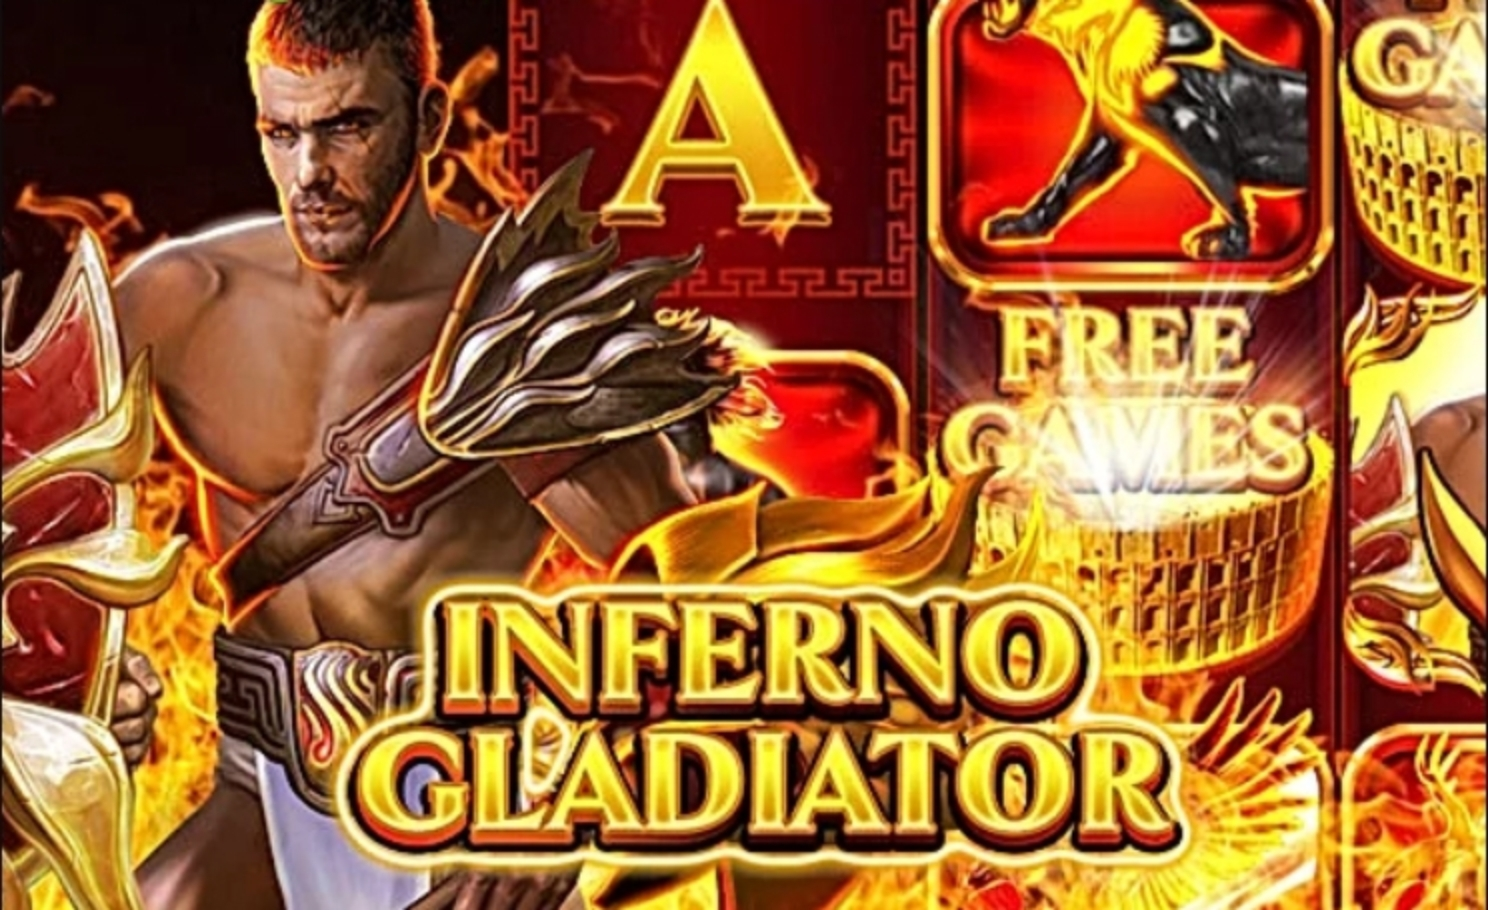 Se Inferno Gladiator Online Slot Demo Game, GONG Gaming Technologies